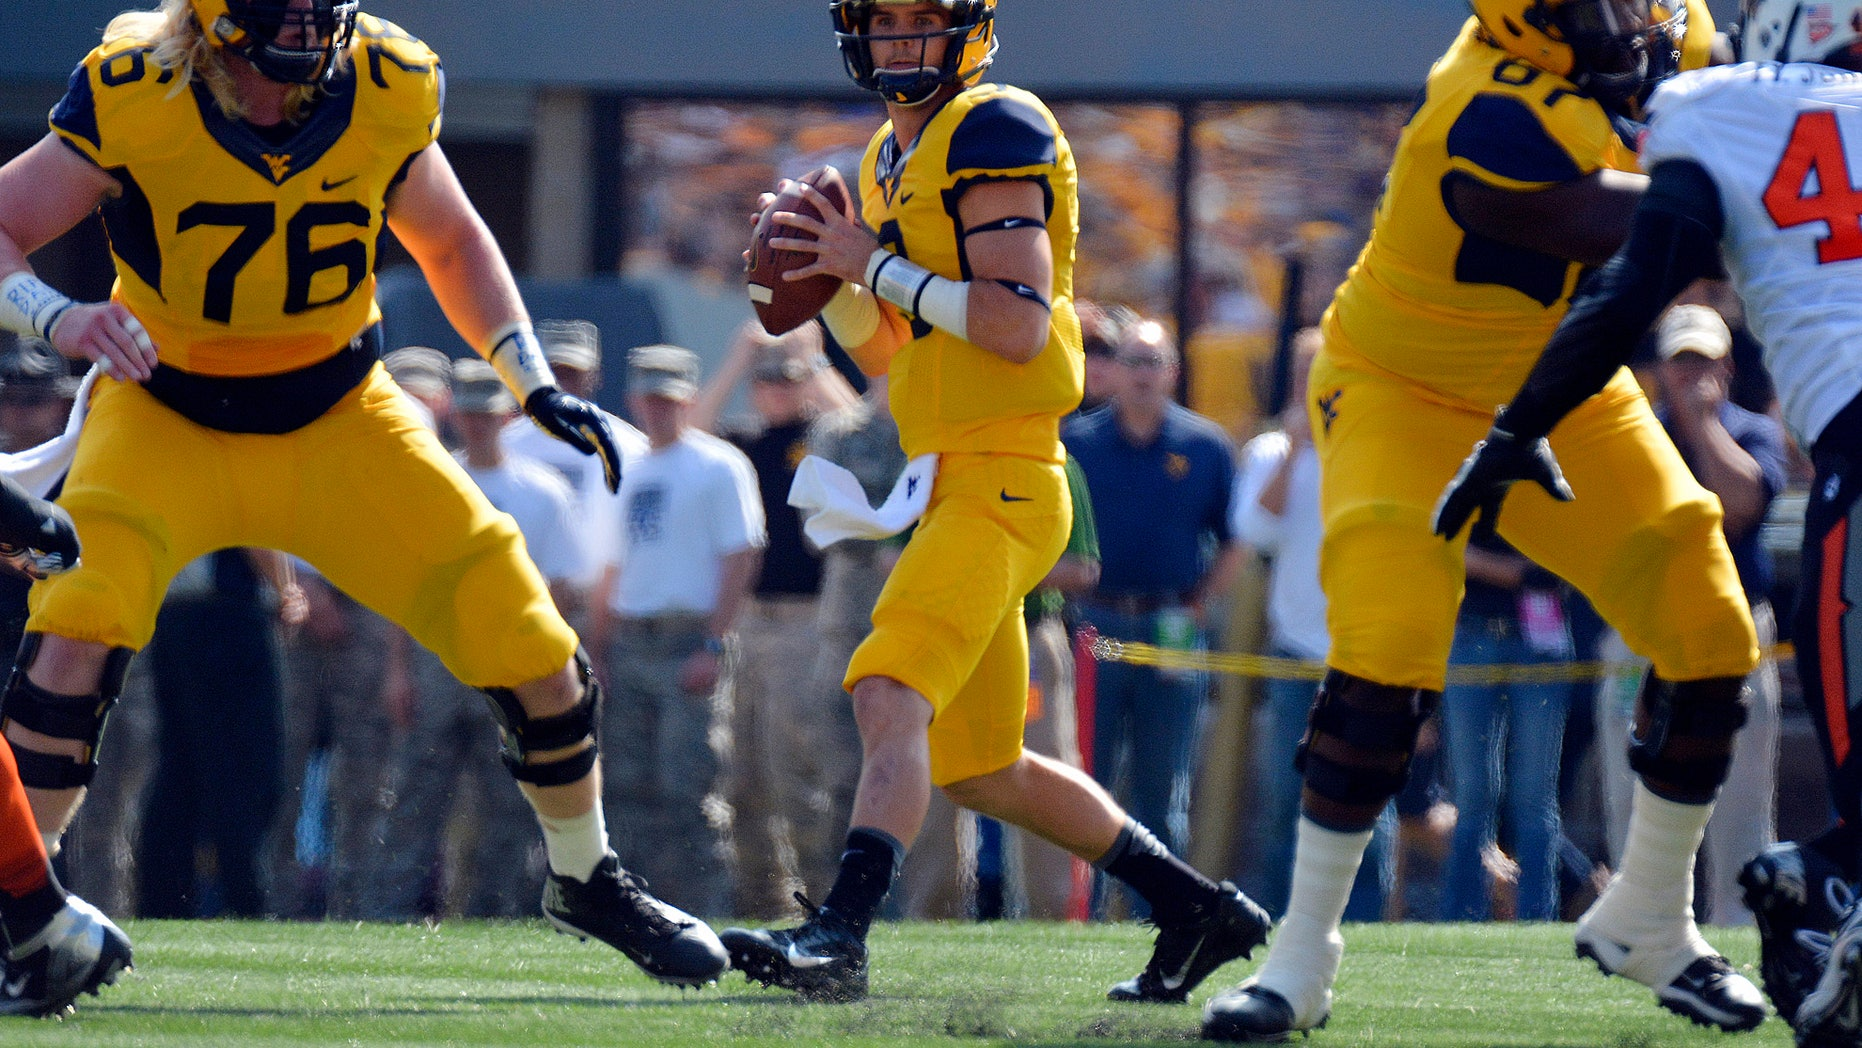 West Virginia quarterback Clint Trickett (9) looks for an open receiver during the first quarter of an NCAA college football game against Oklahoma State in Morgantown, W.Va., on Saturday, Sept. 28, 2013. (AP Photo/Tyler Evert)